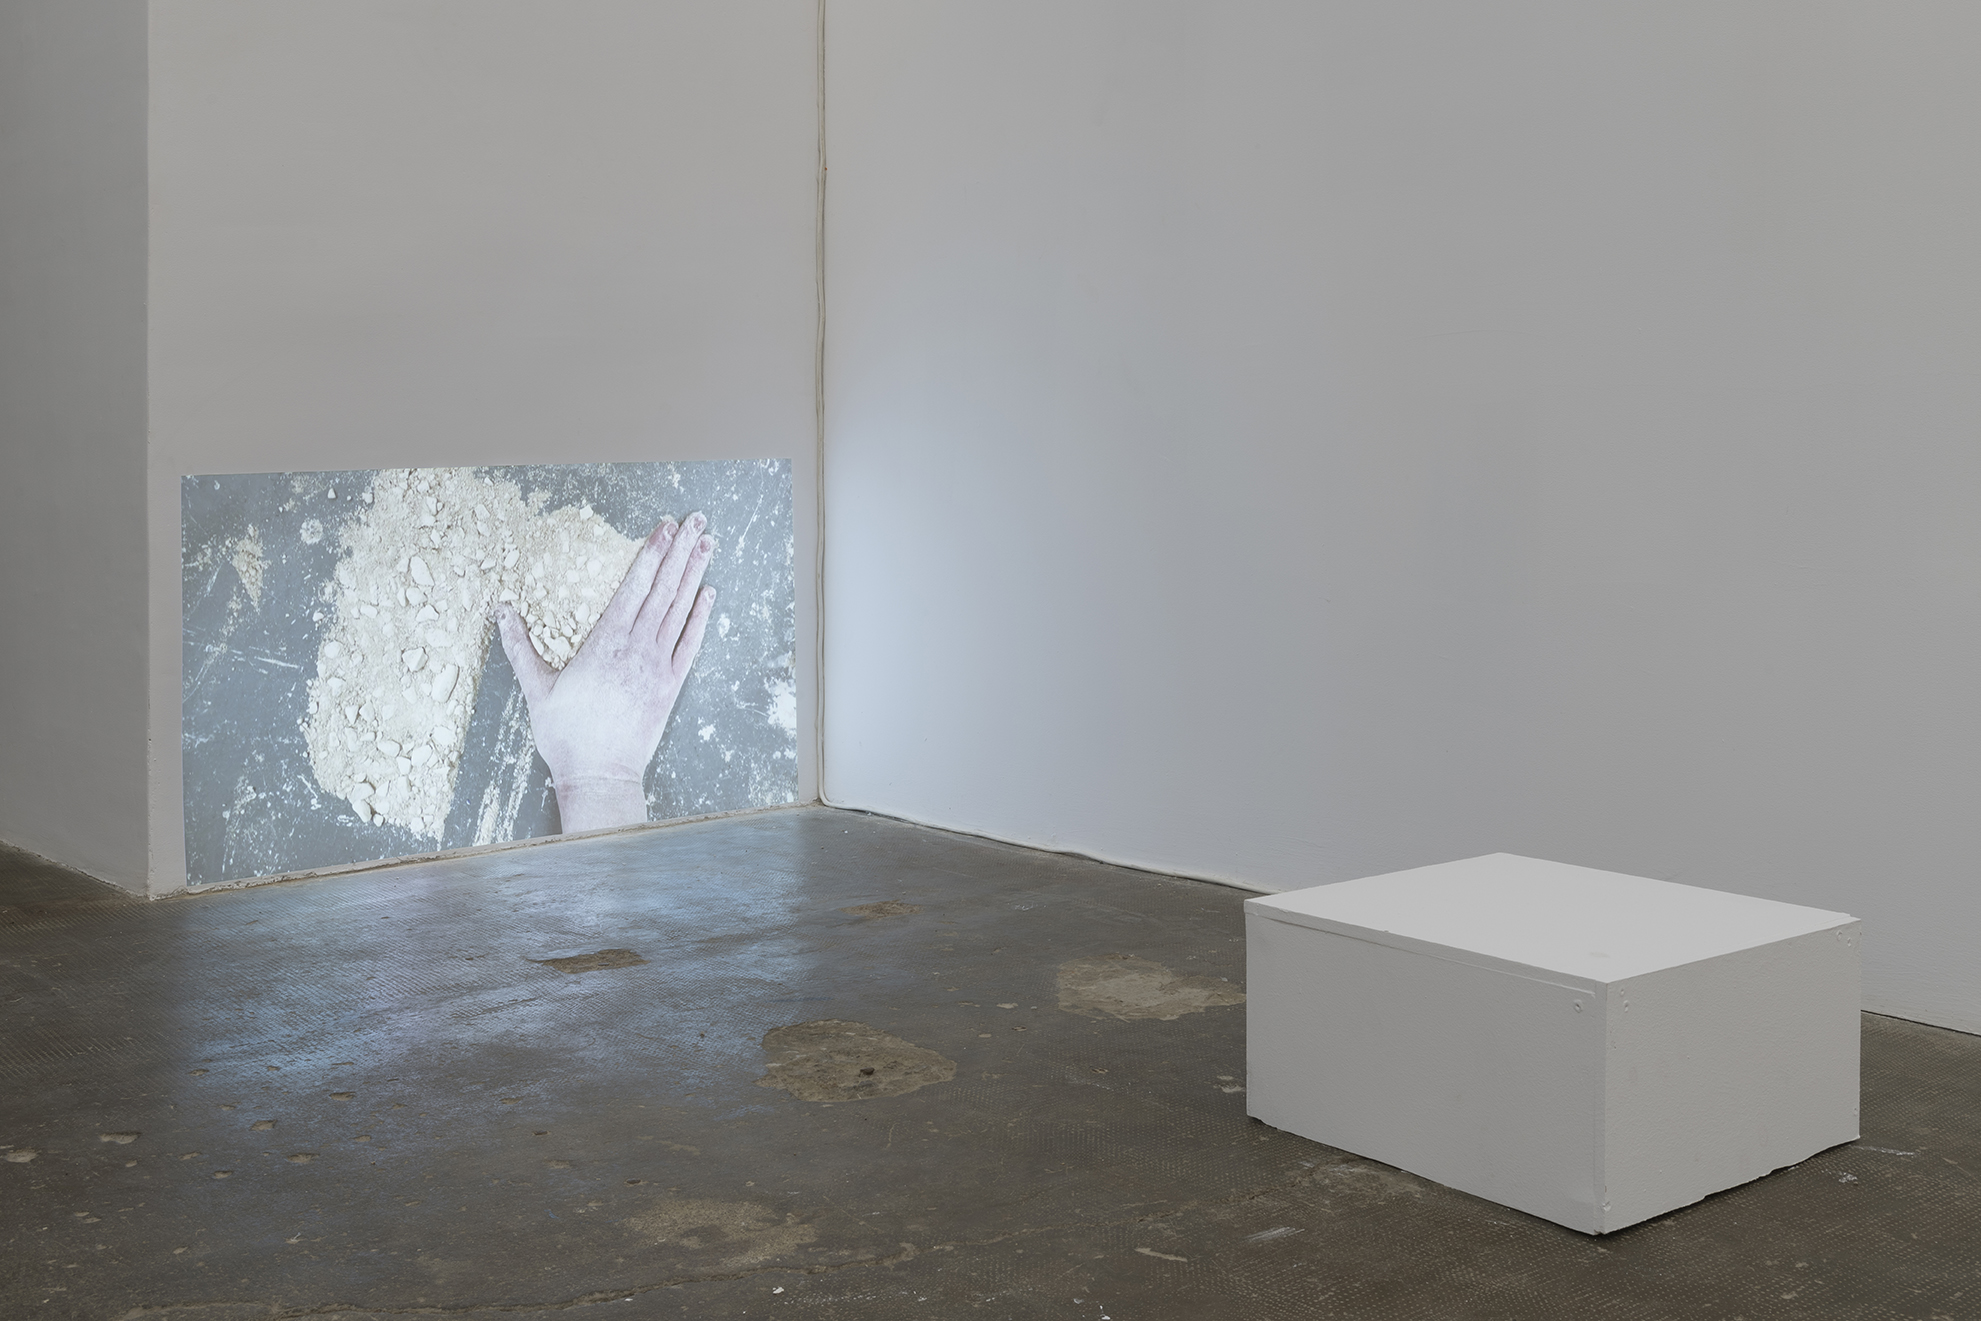 Lydia Gifford / Shape I know / 23.01 - 27.02